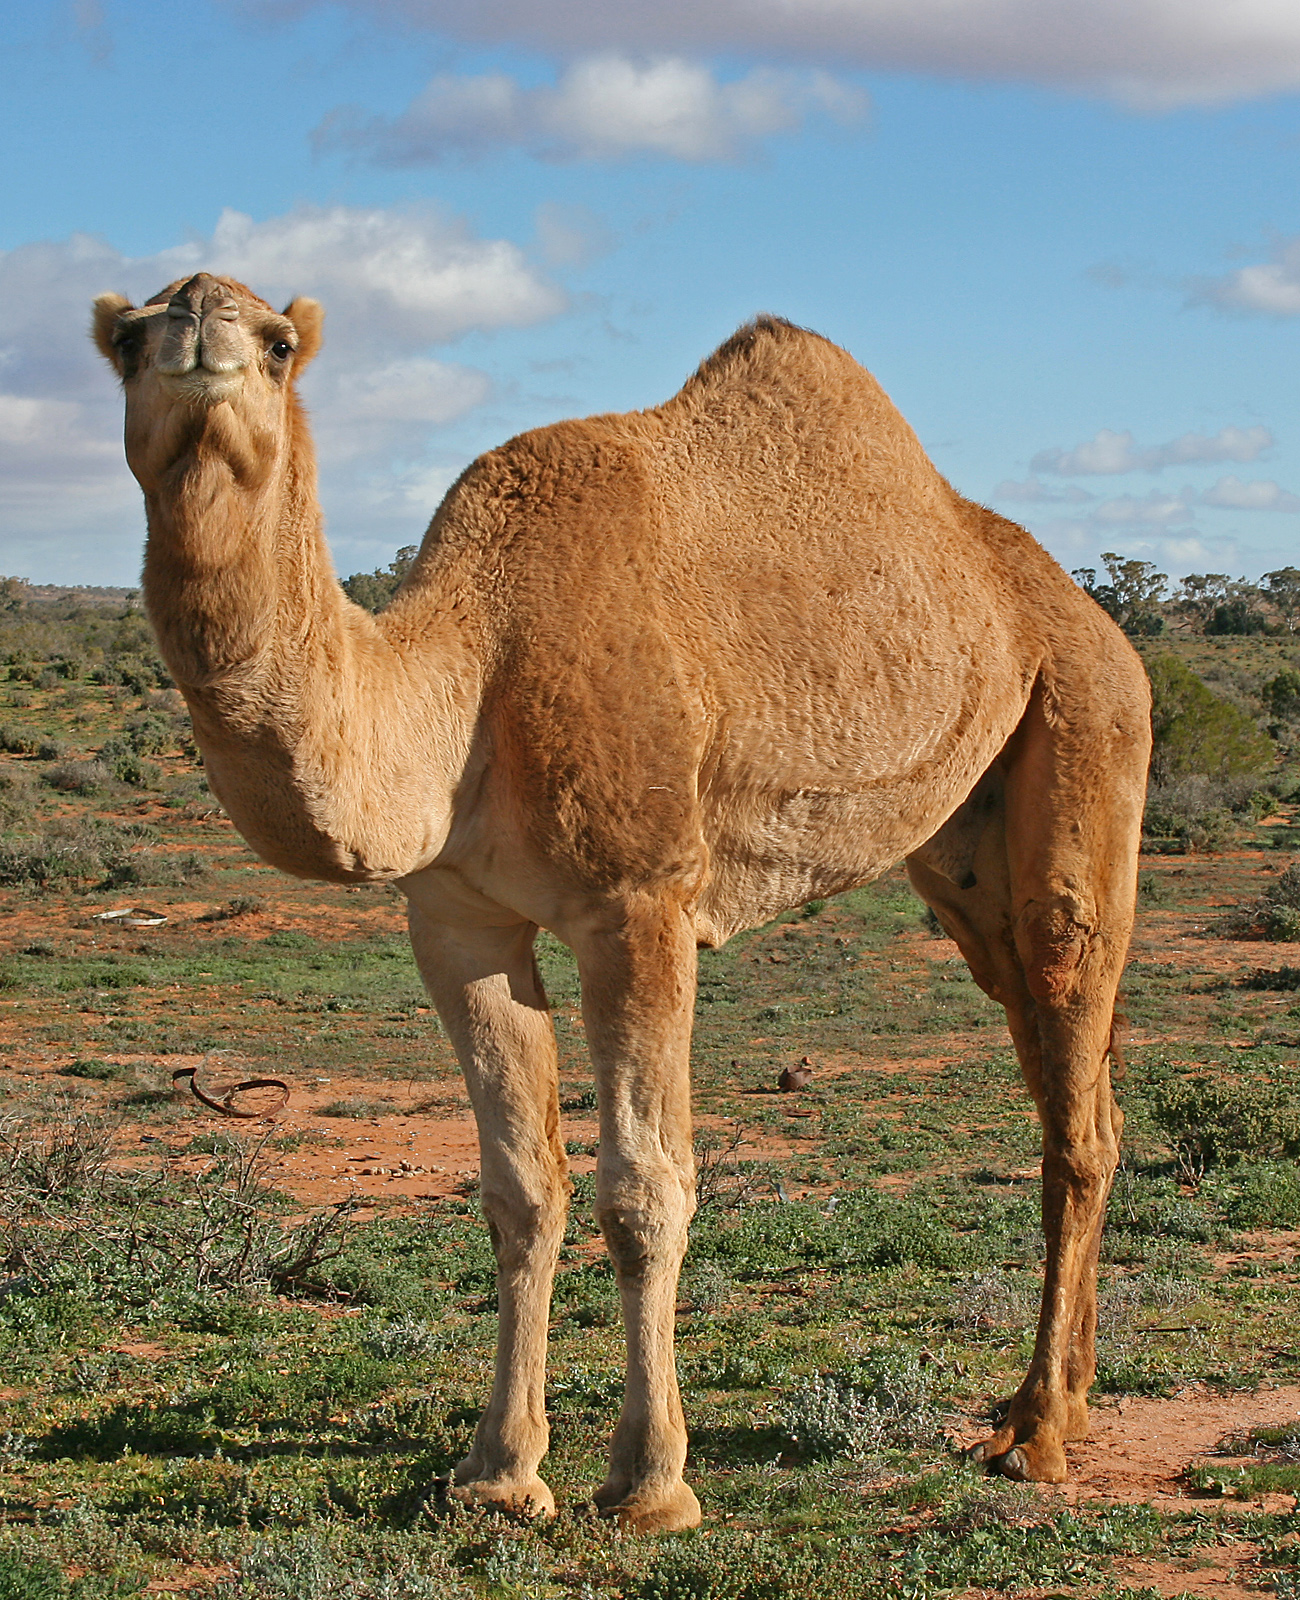 https://upload.wikimedia.org/wikipedia/commons/4/43/07._Camel_Profile%2C_near_Silverton%2C_NSW%2C_07.07.2007.jpg